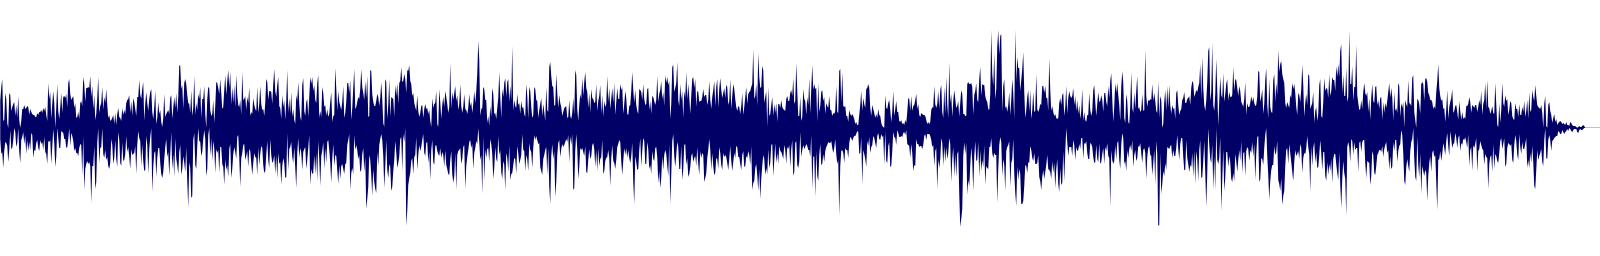 waveform of track #132337